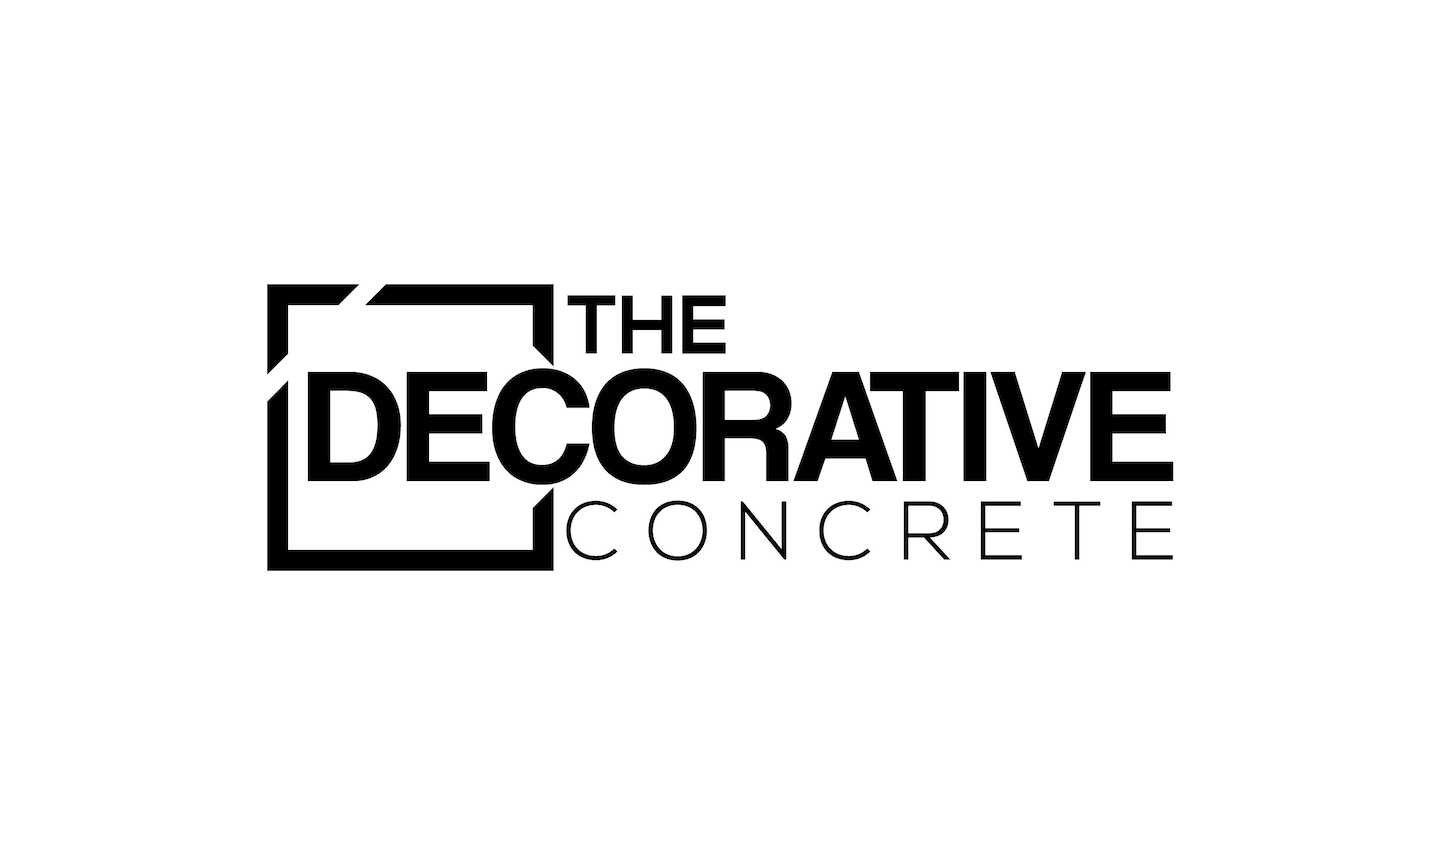 The Decorative Concrete